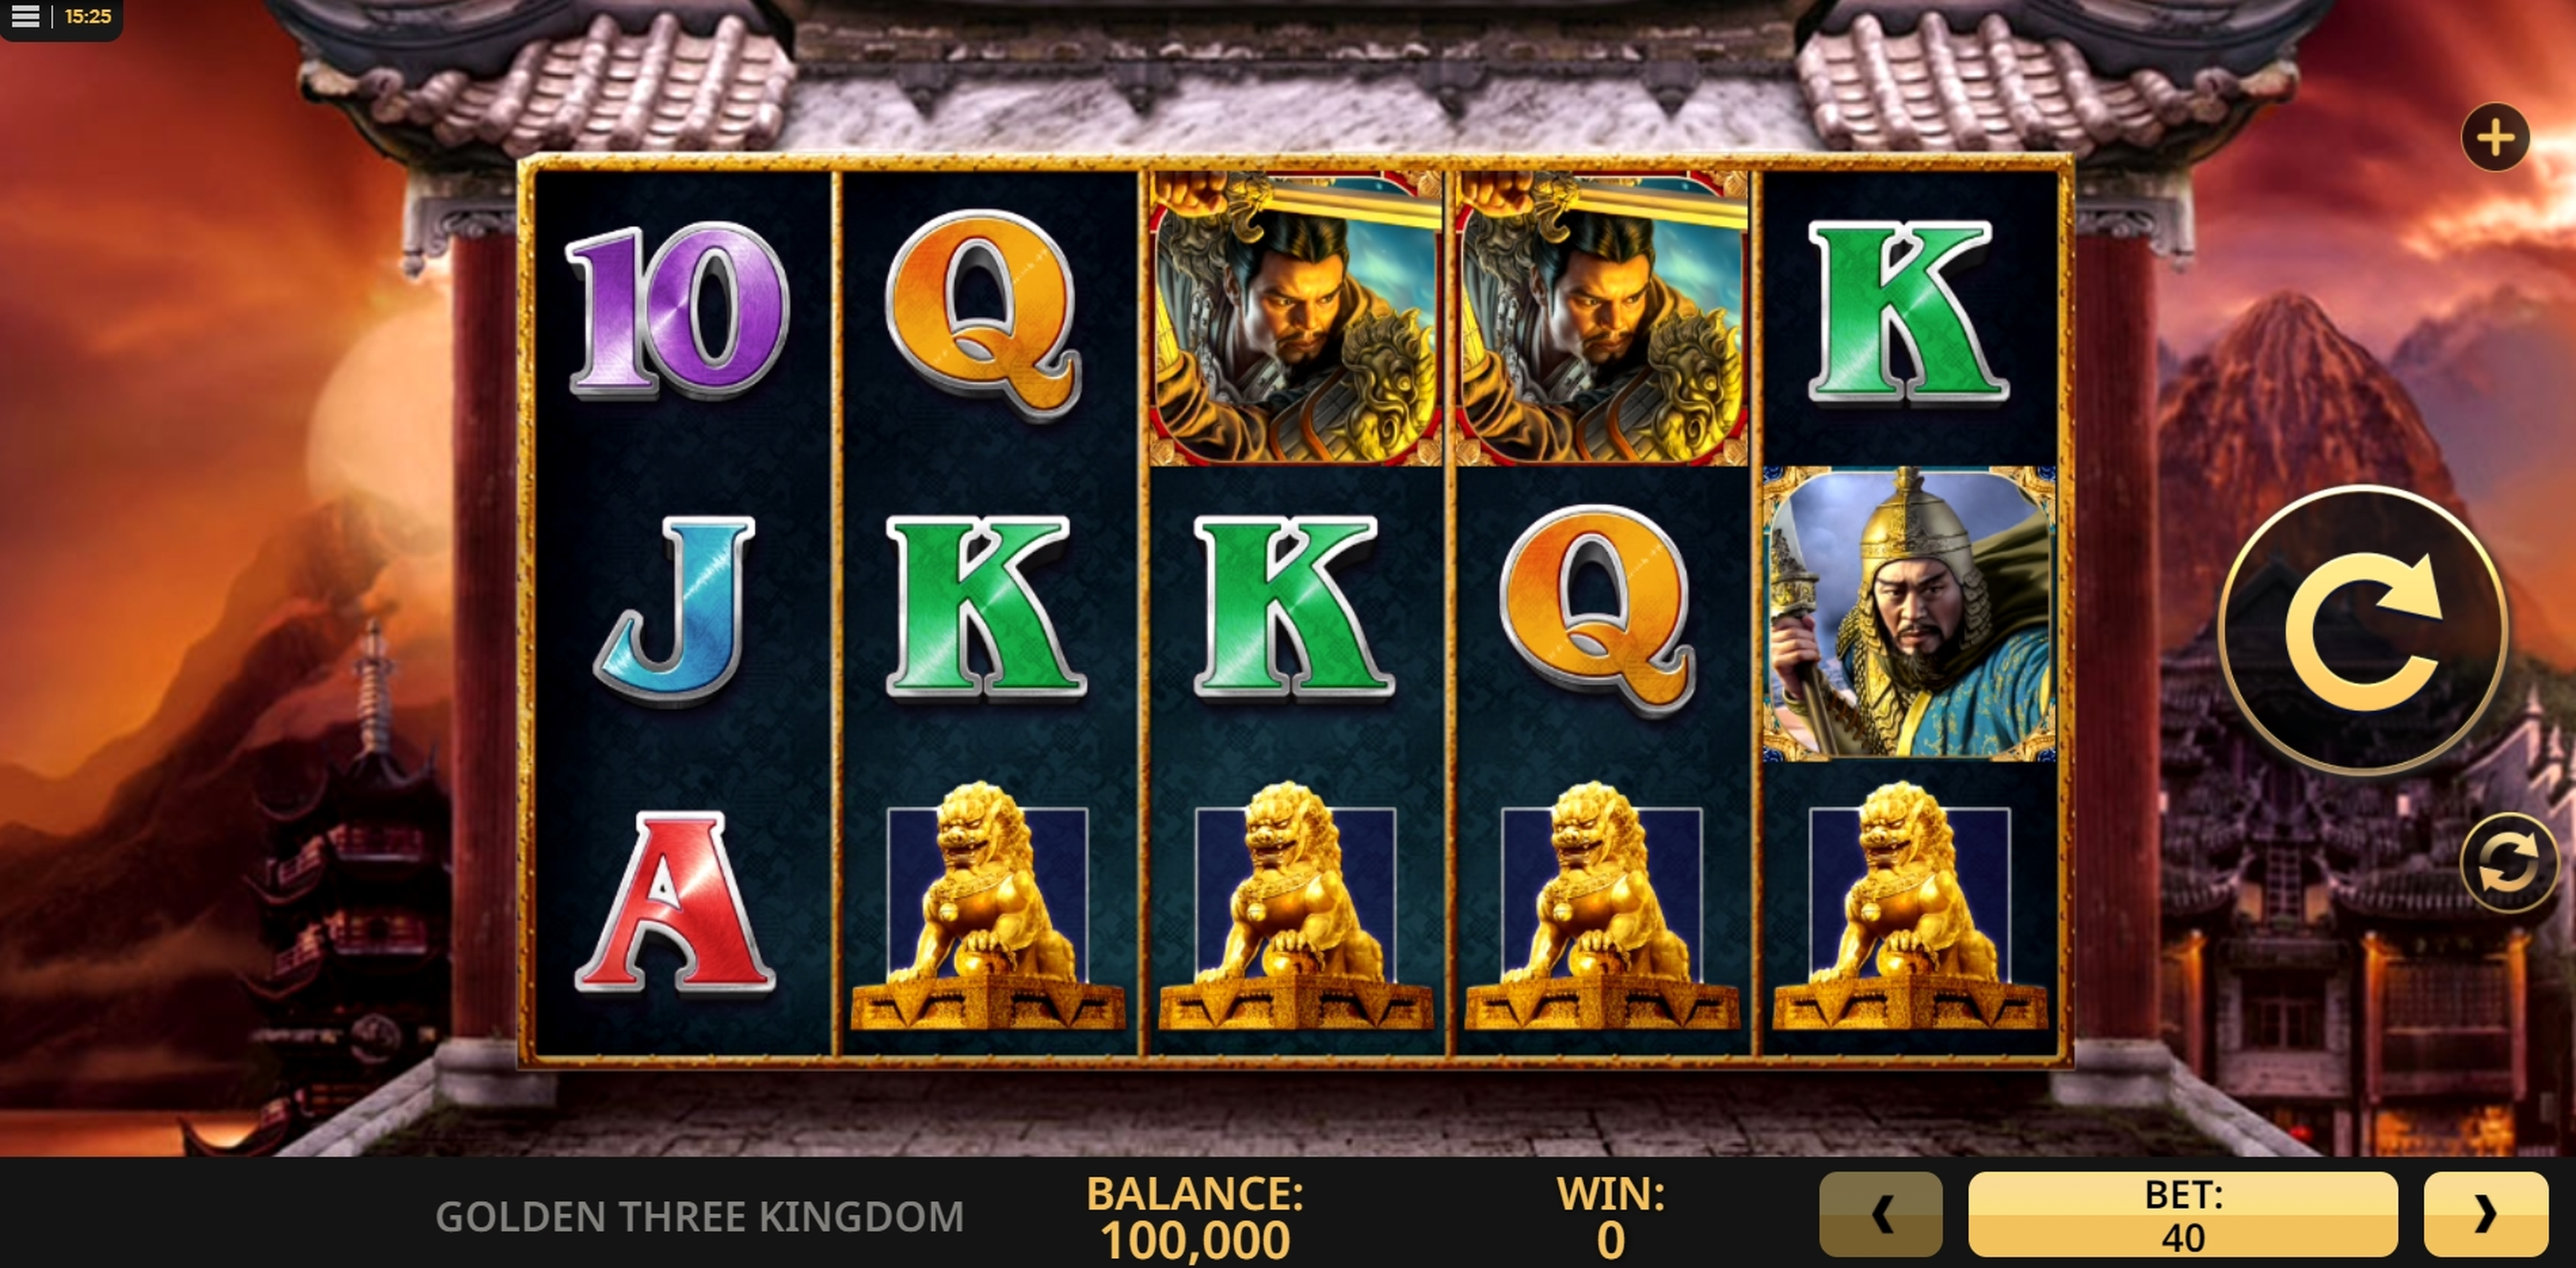 Reels in Golden Three Kingdom Slot Game by High 5 Games